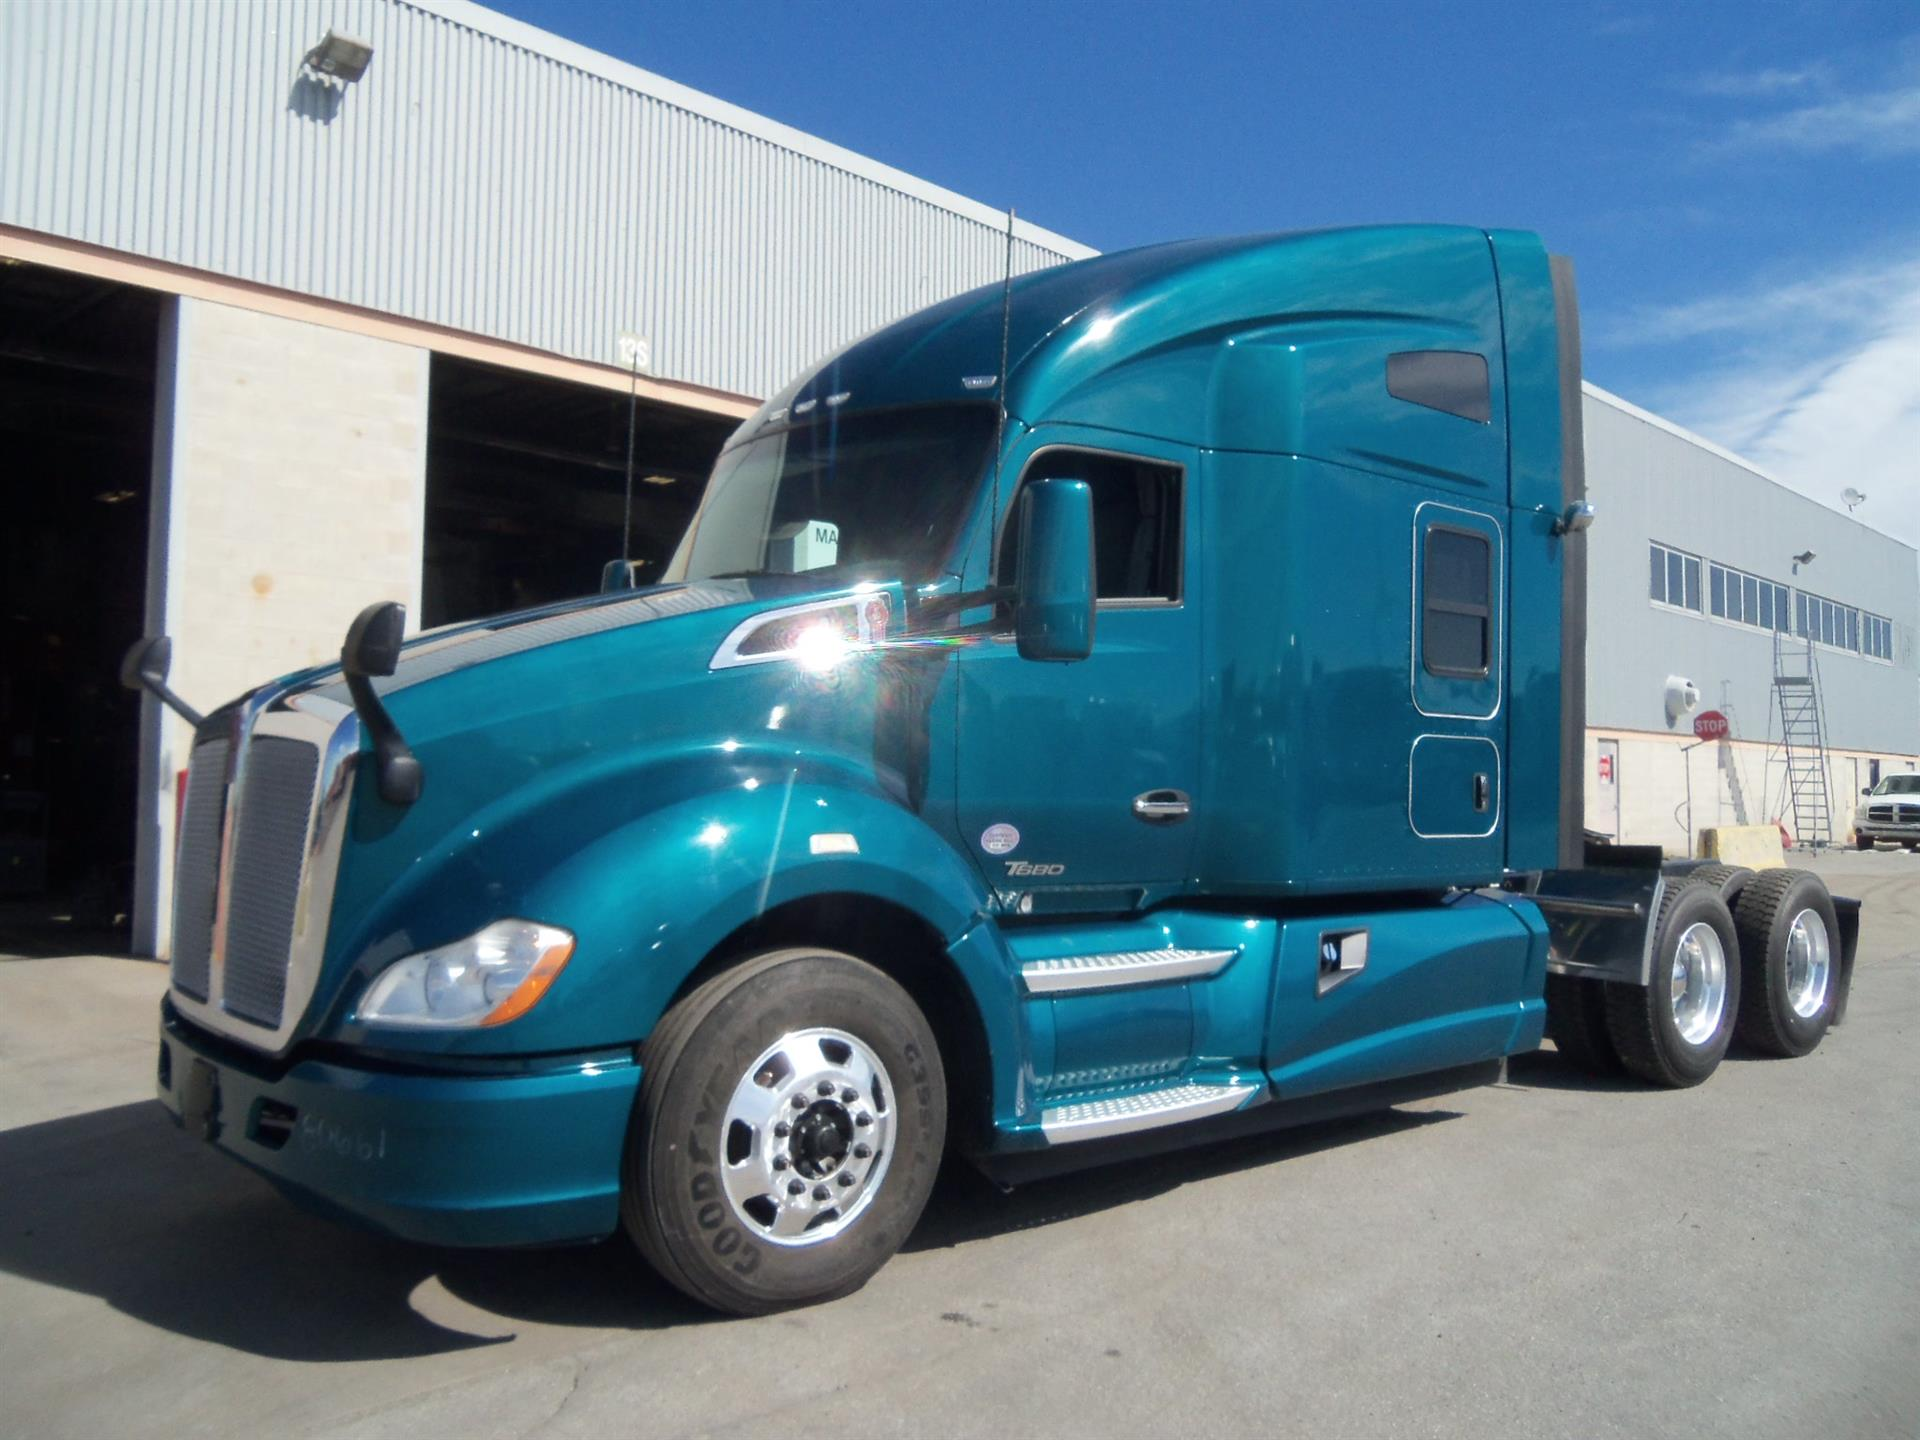 USED 2016 KENWORTH T680 SLEEPER TRUCK #133815